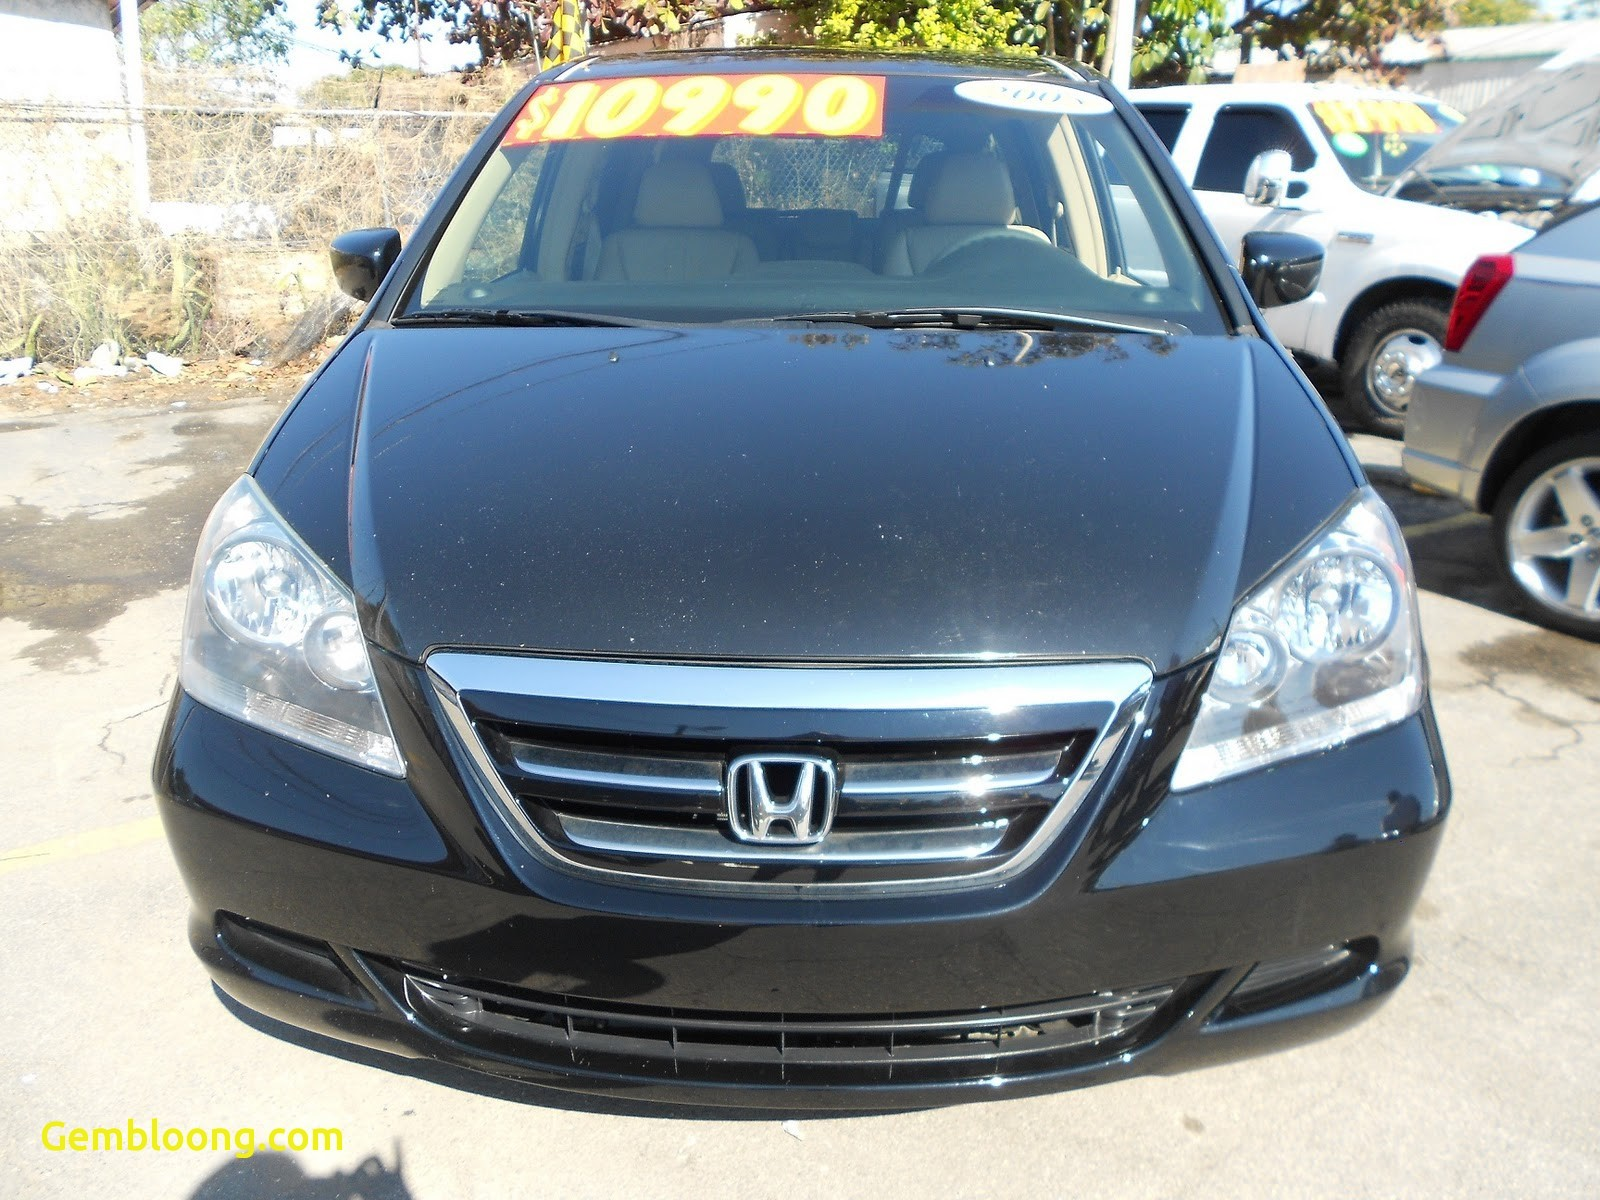 Cheap Used Cars For Sale >> New Cheap Hondas For Sale Near Me Used Cars